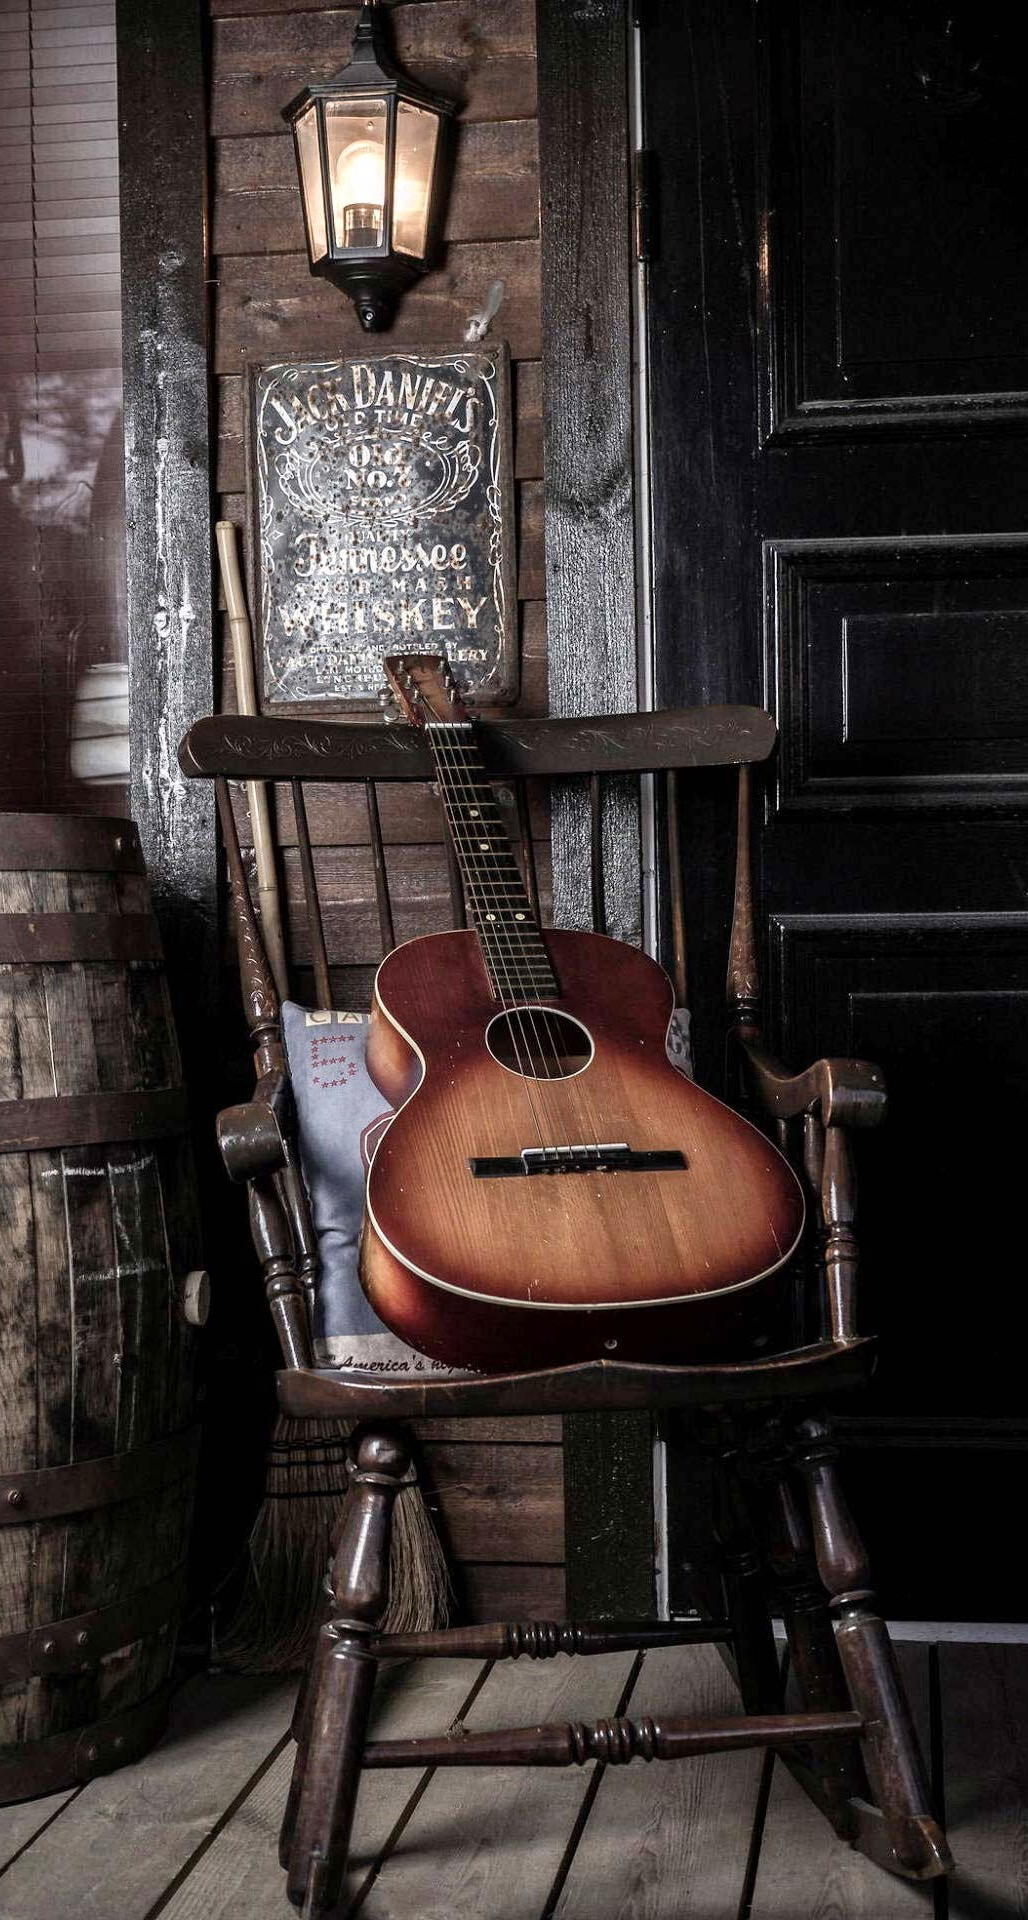 Old-Guitar-On-Chair-iPhone-6-Plus-HD-Wallpaper.